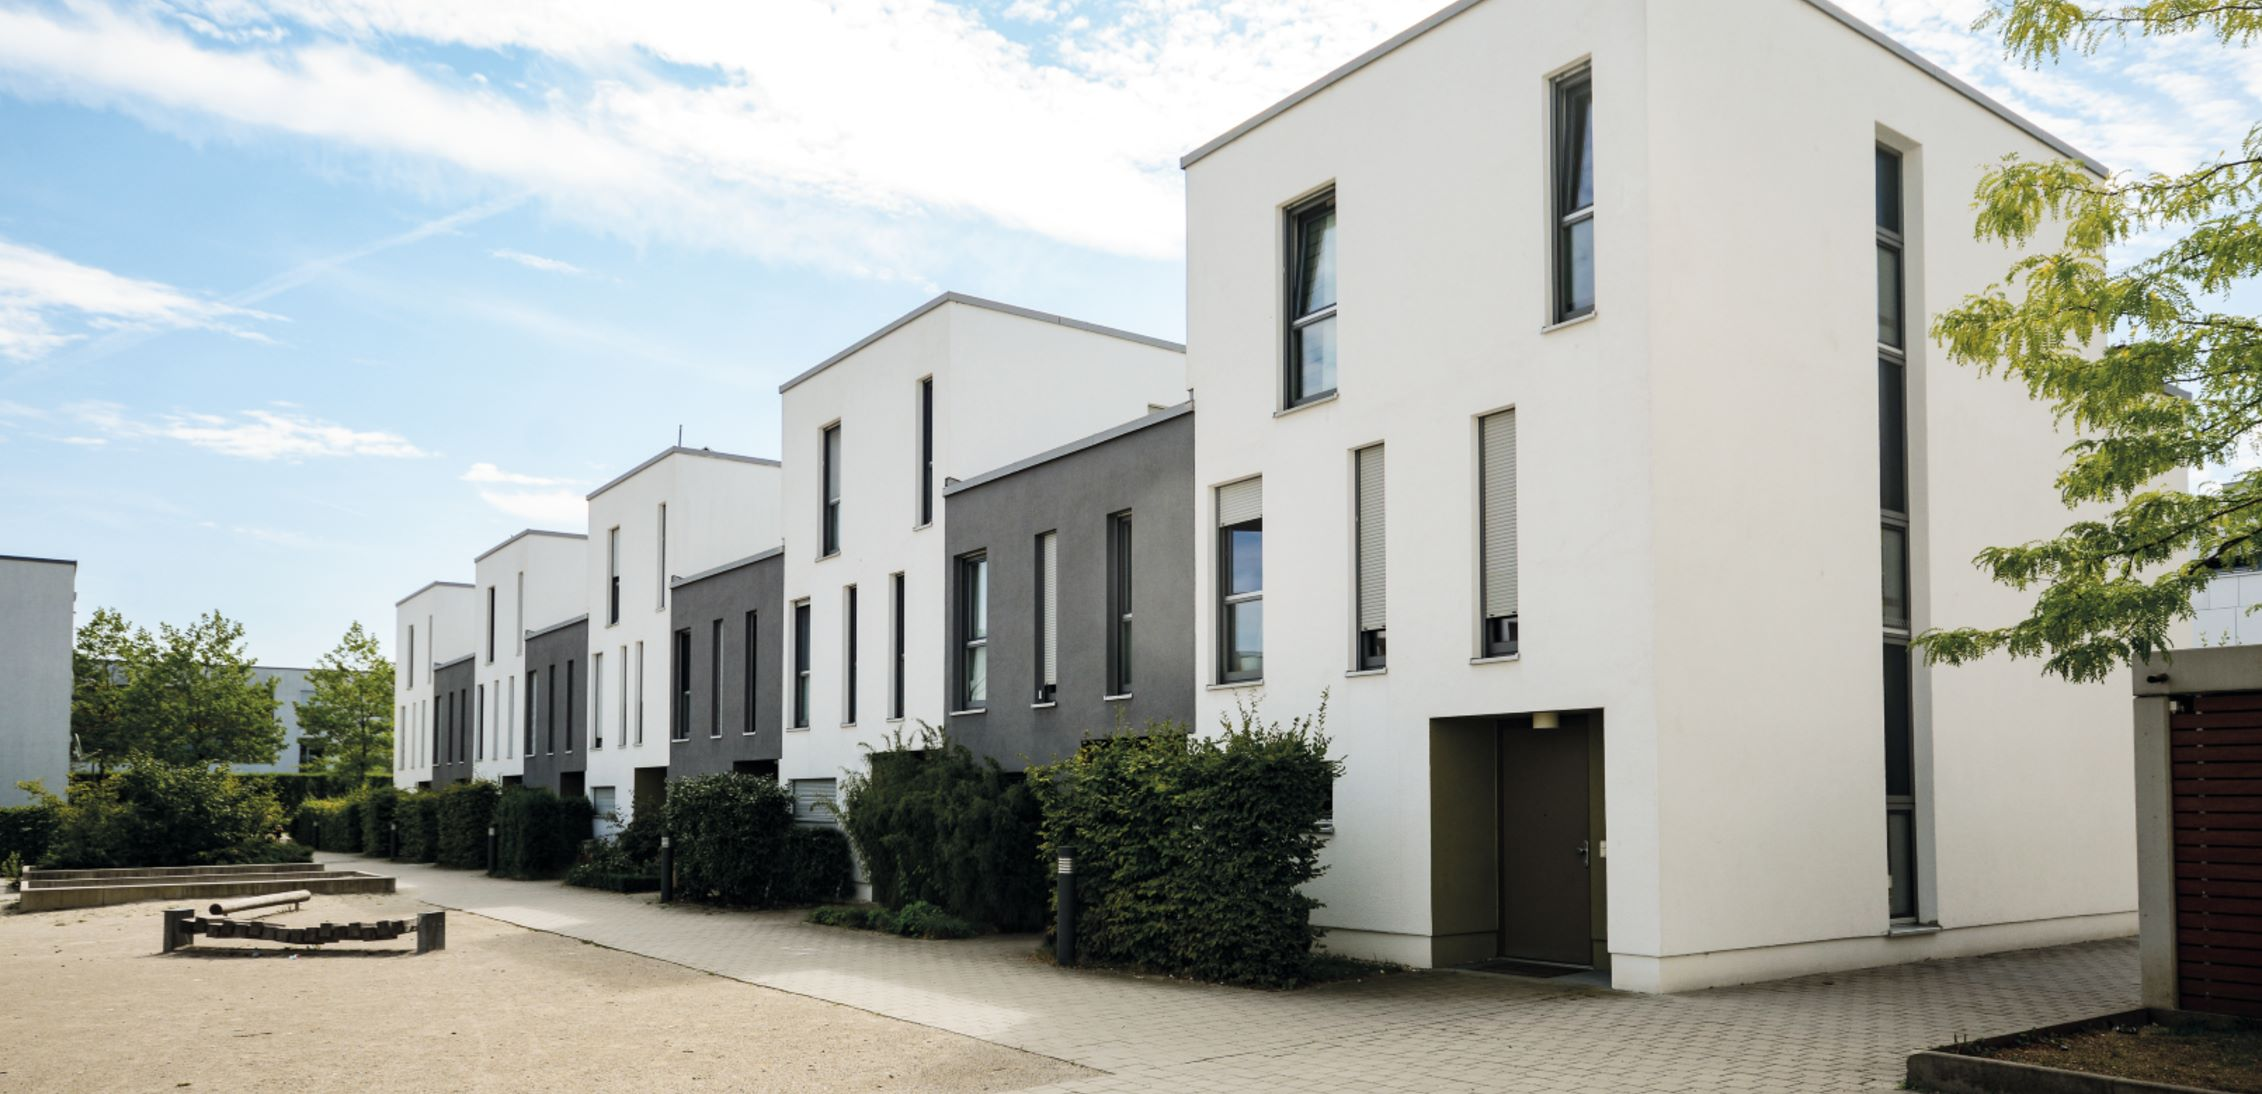 set of similar houses in a row